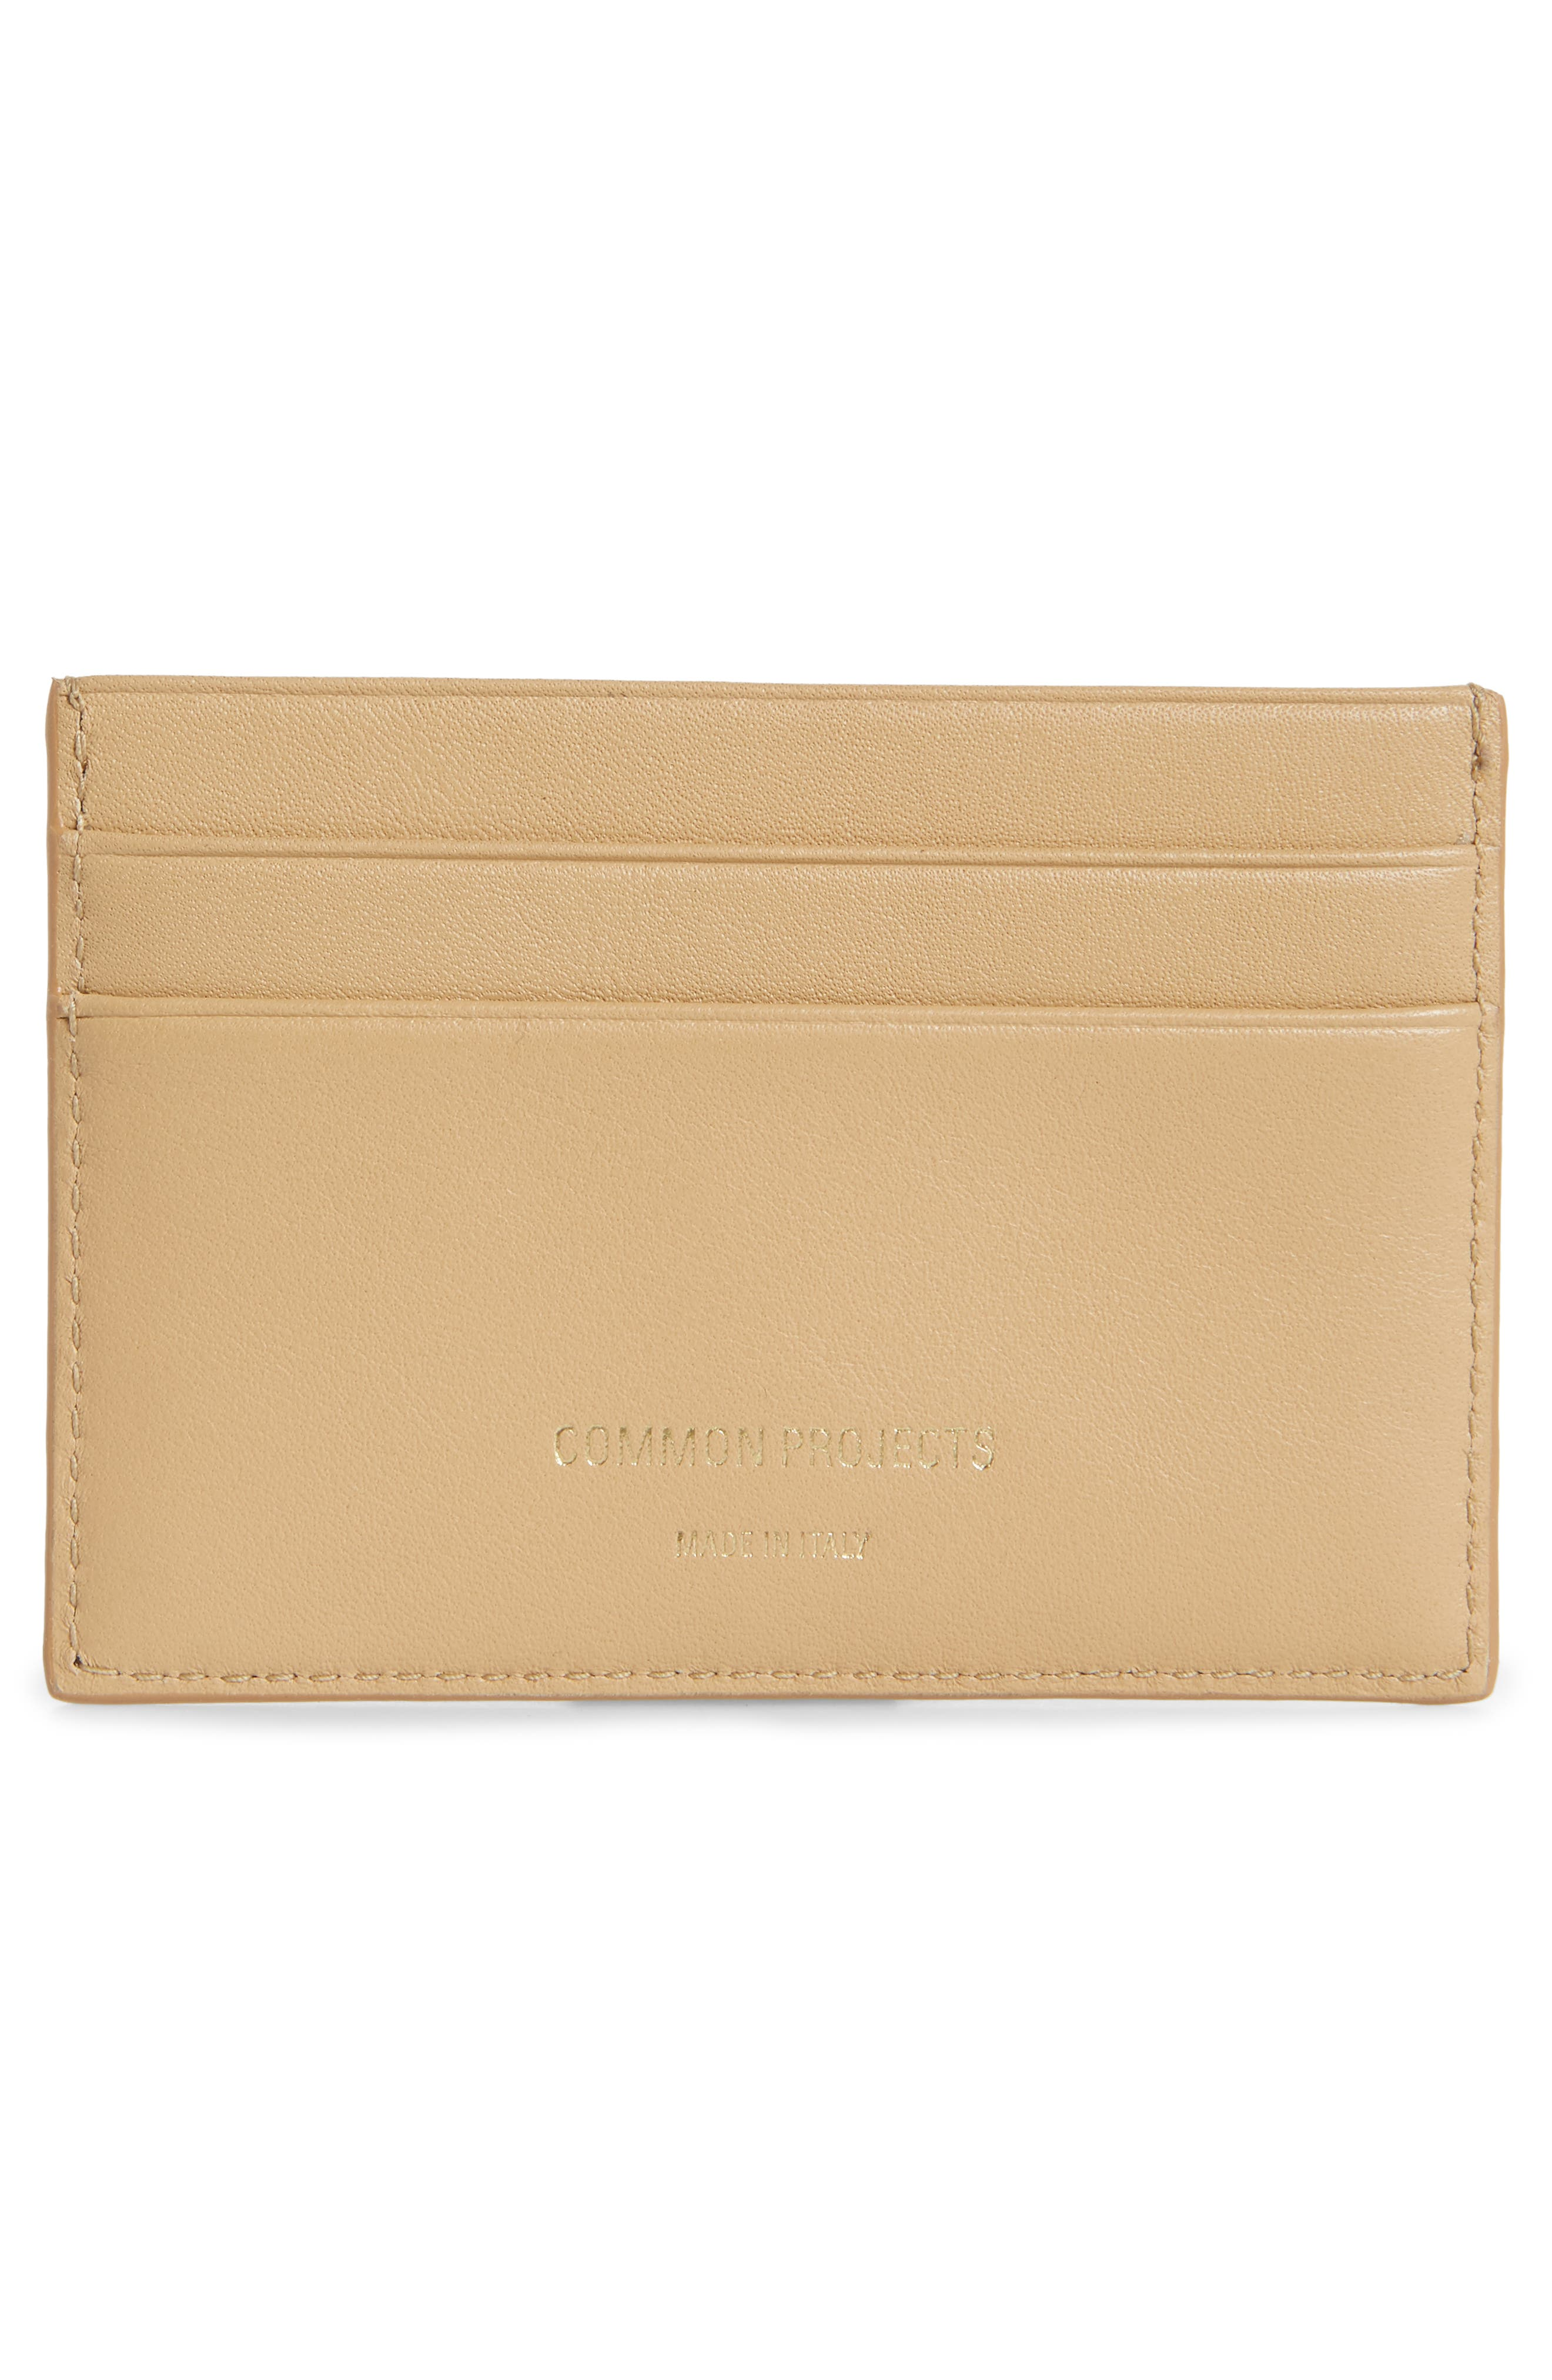 COMMON PROJECTS, Nappa Leather Card Case, Alternate thumbnail 2, color, 250